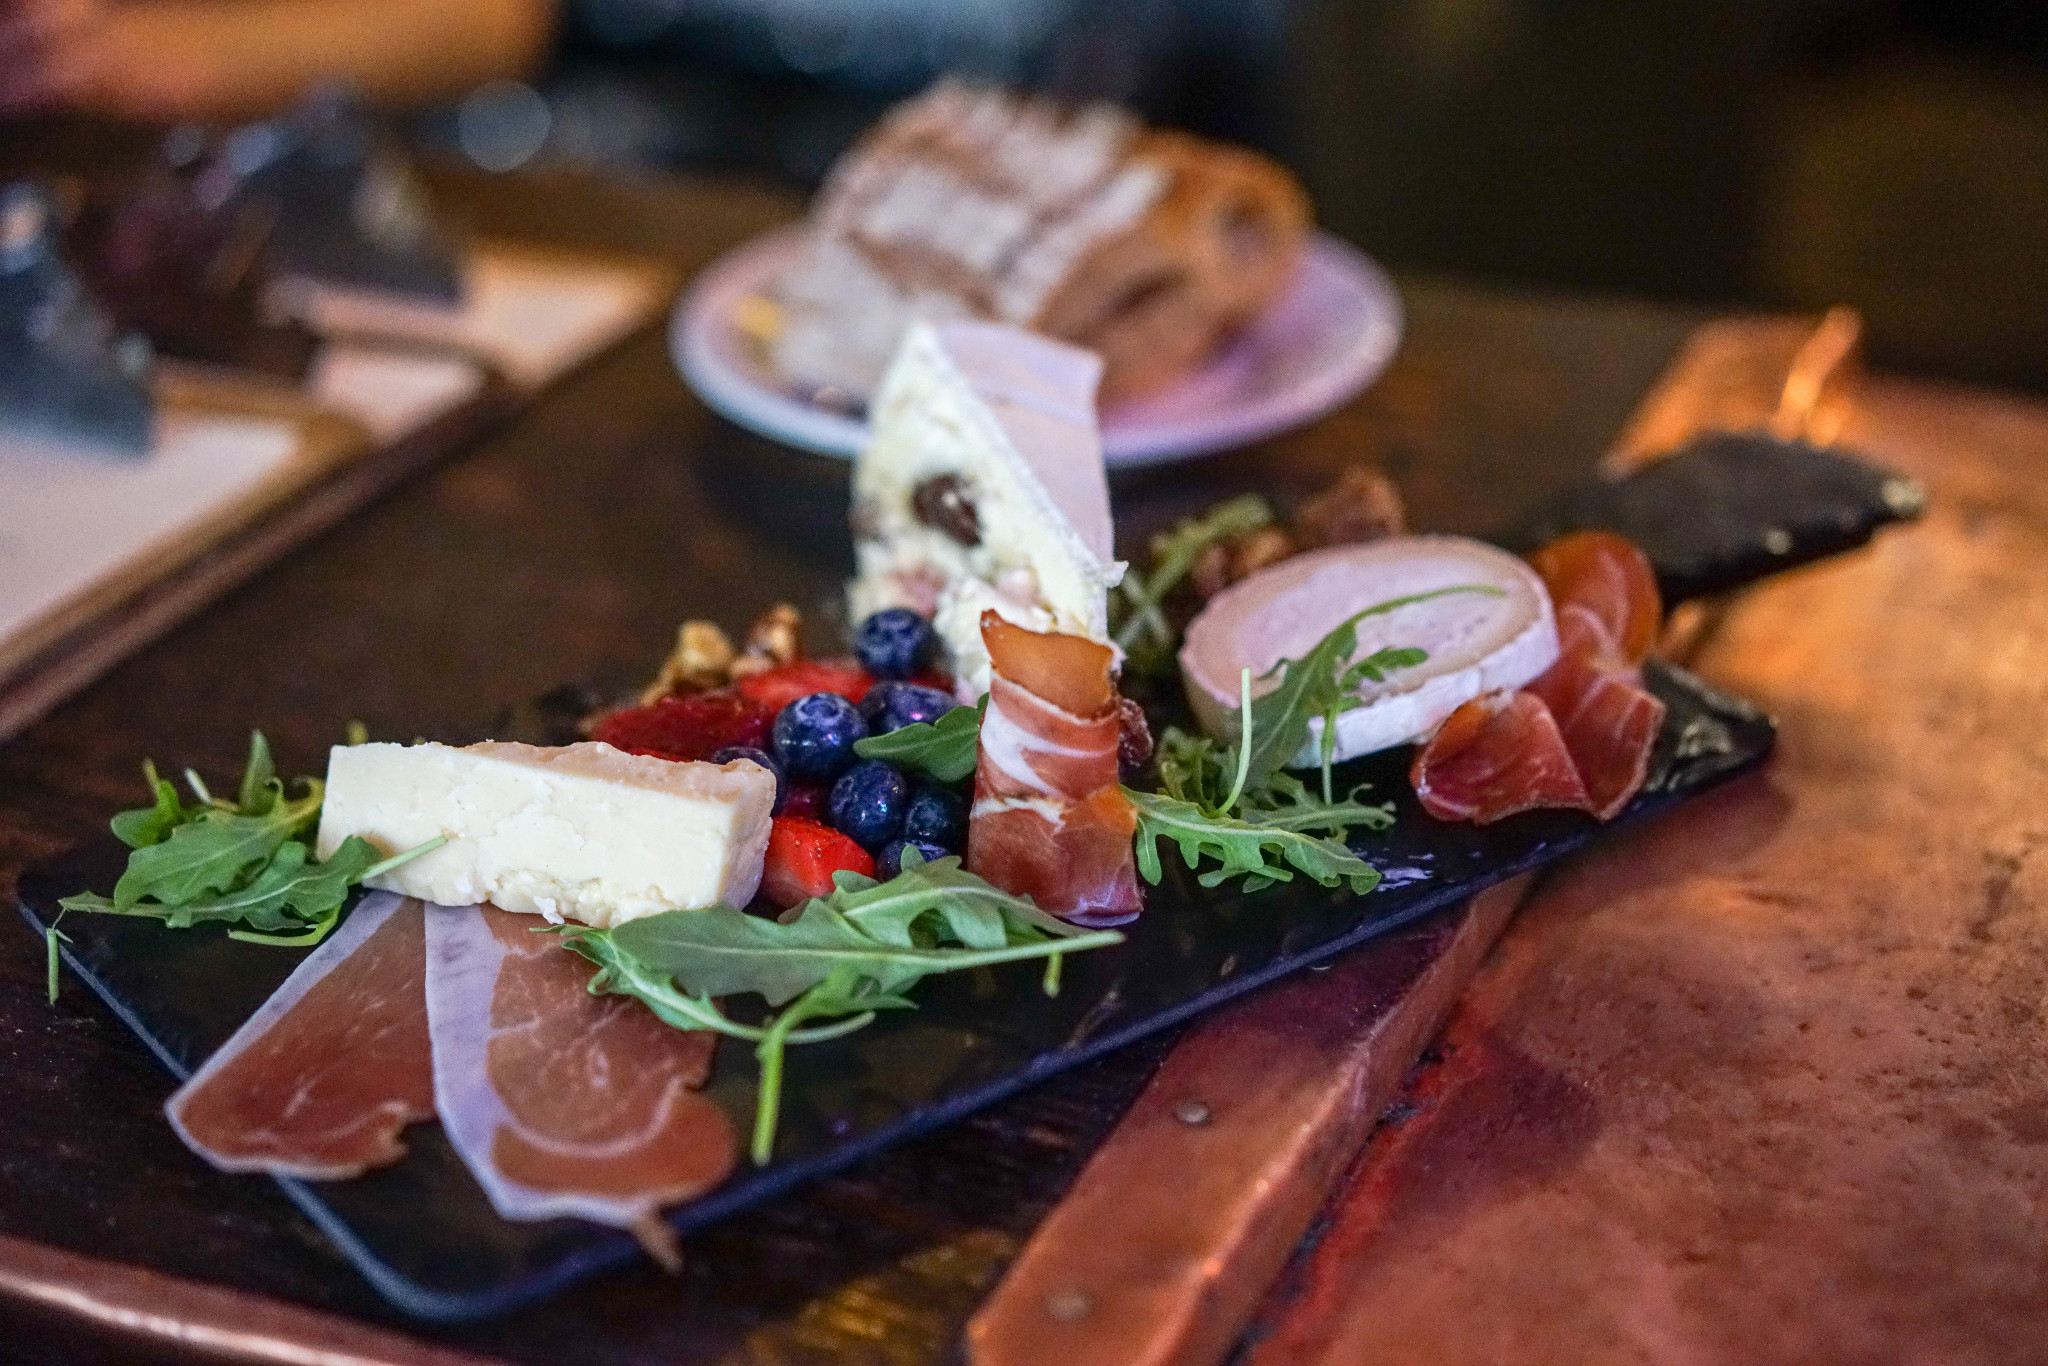 An elegant cheese, fruit, and charcuterie board from Avenue Pub. (Photo: Paul Broussard)